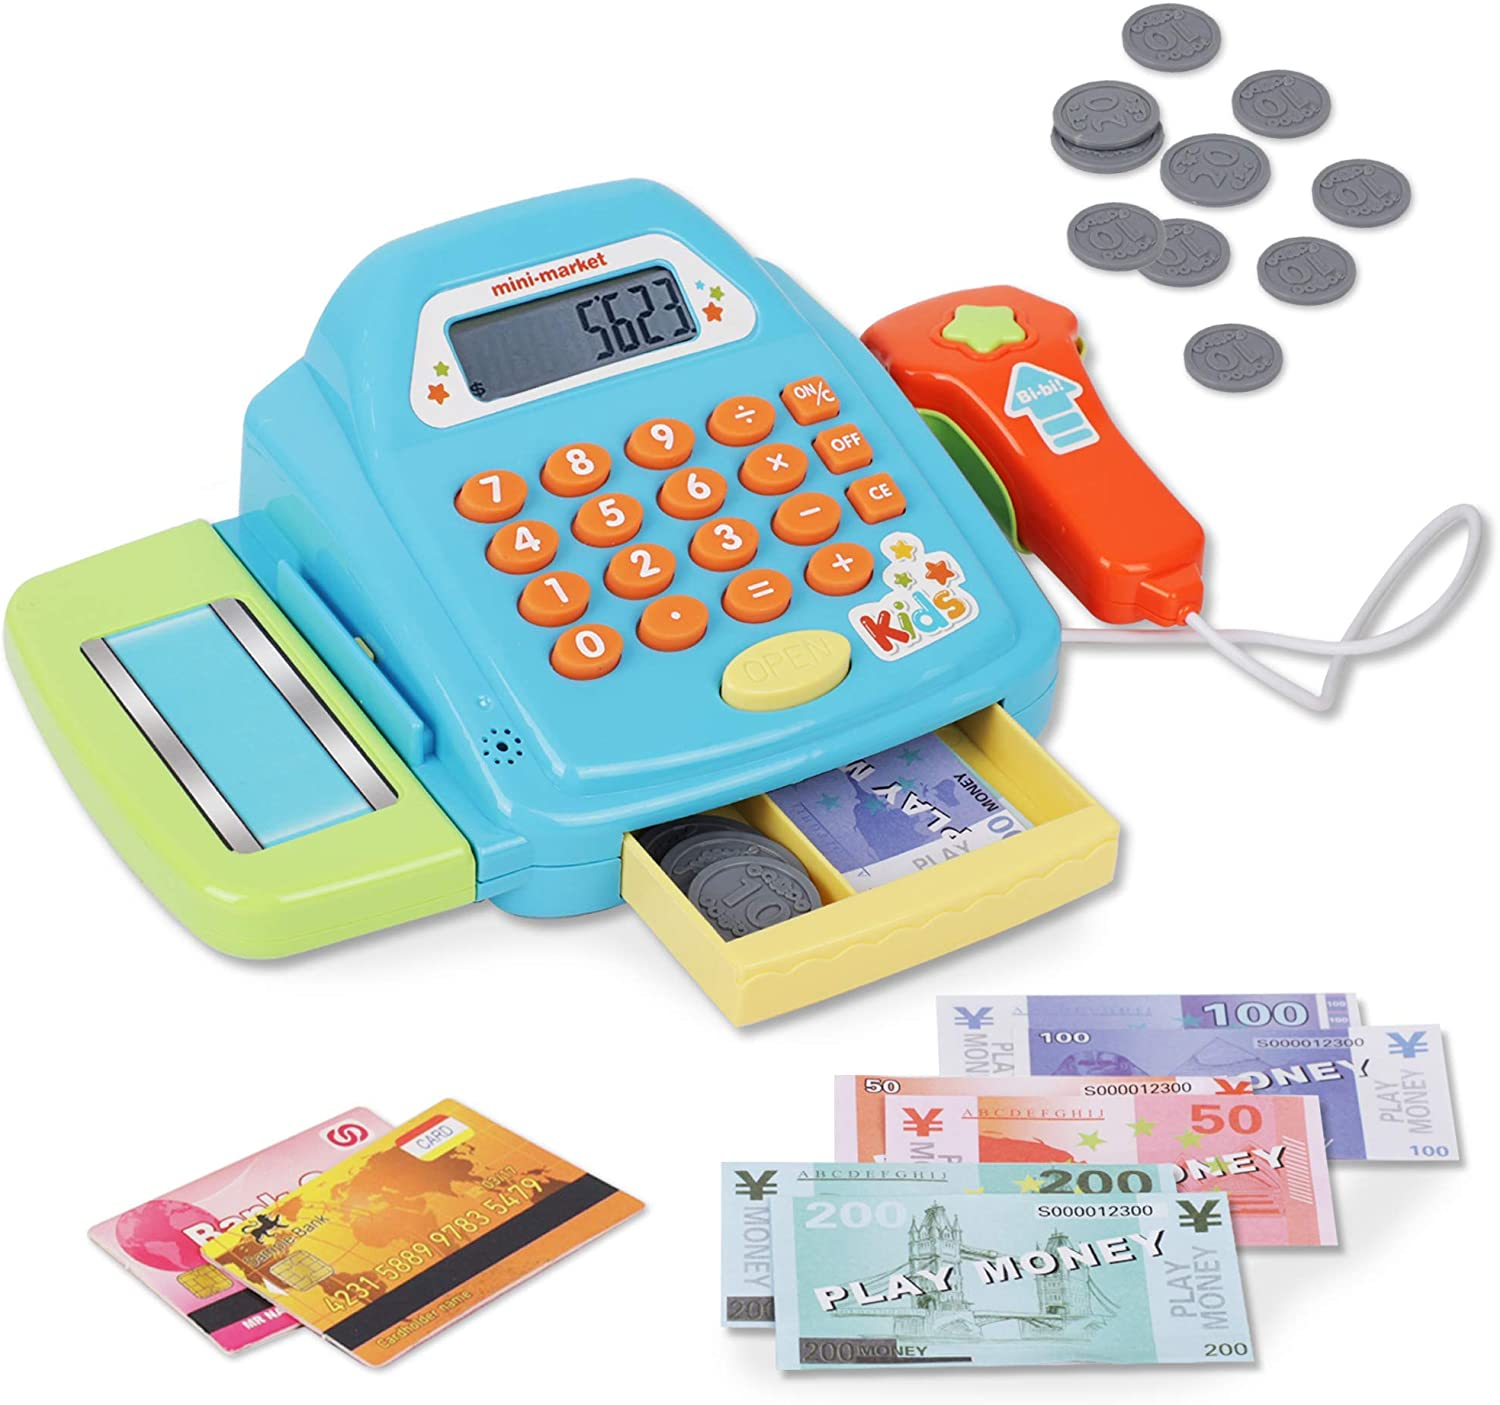 Playkidz Interactive Toy Cash Register for Kids - Sounds & Early Learning Play - Handheld Scanner & Calculator, Working Conveyor Belt